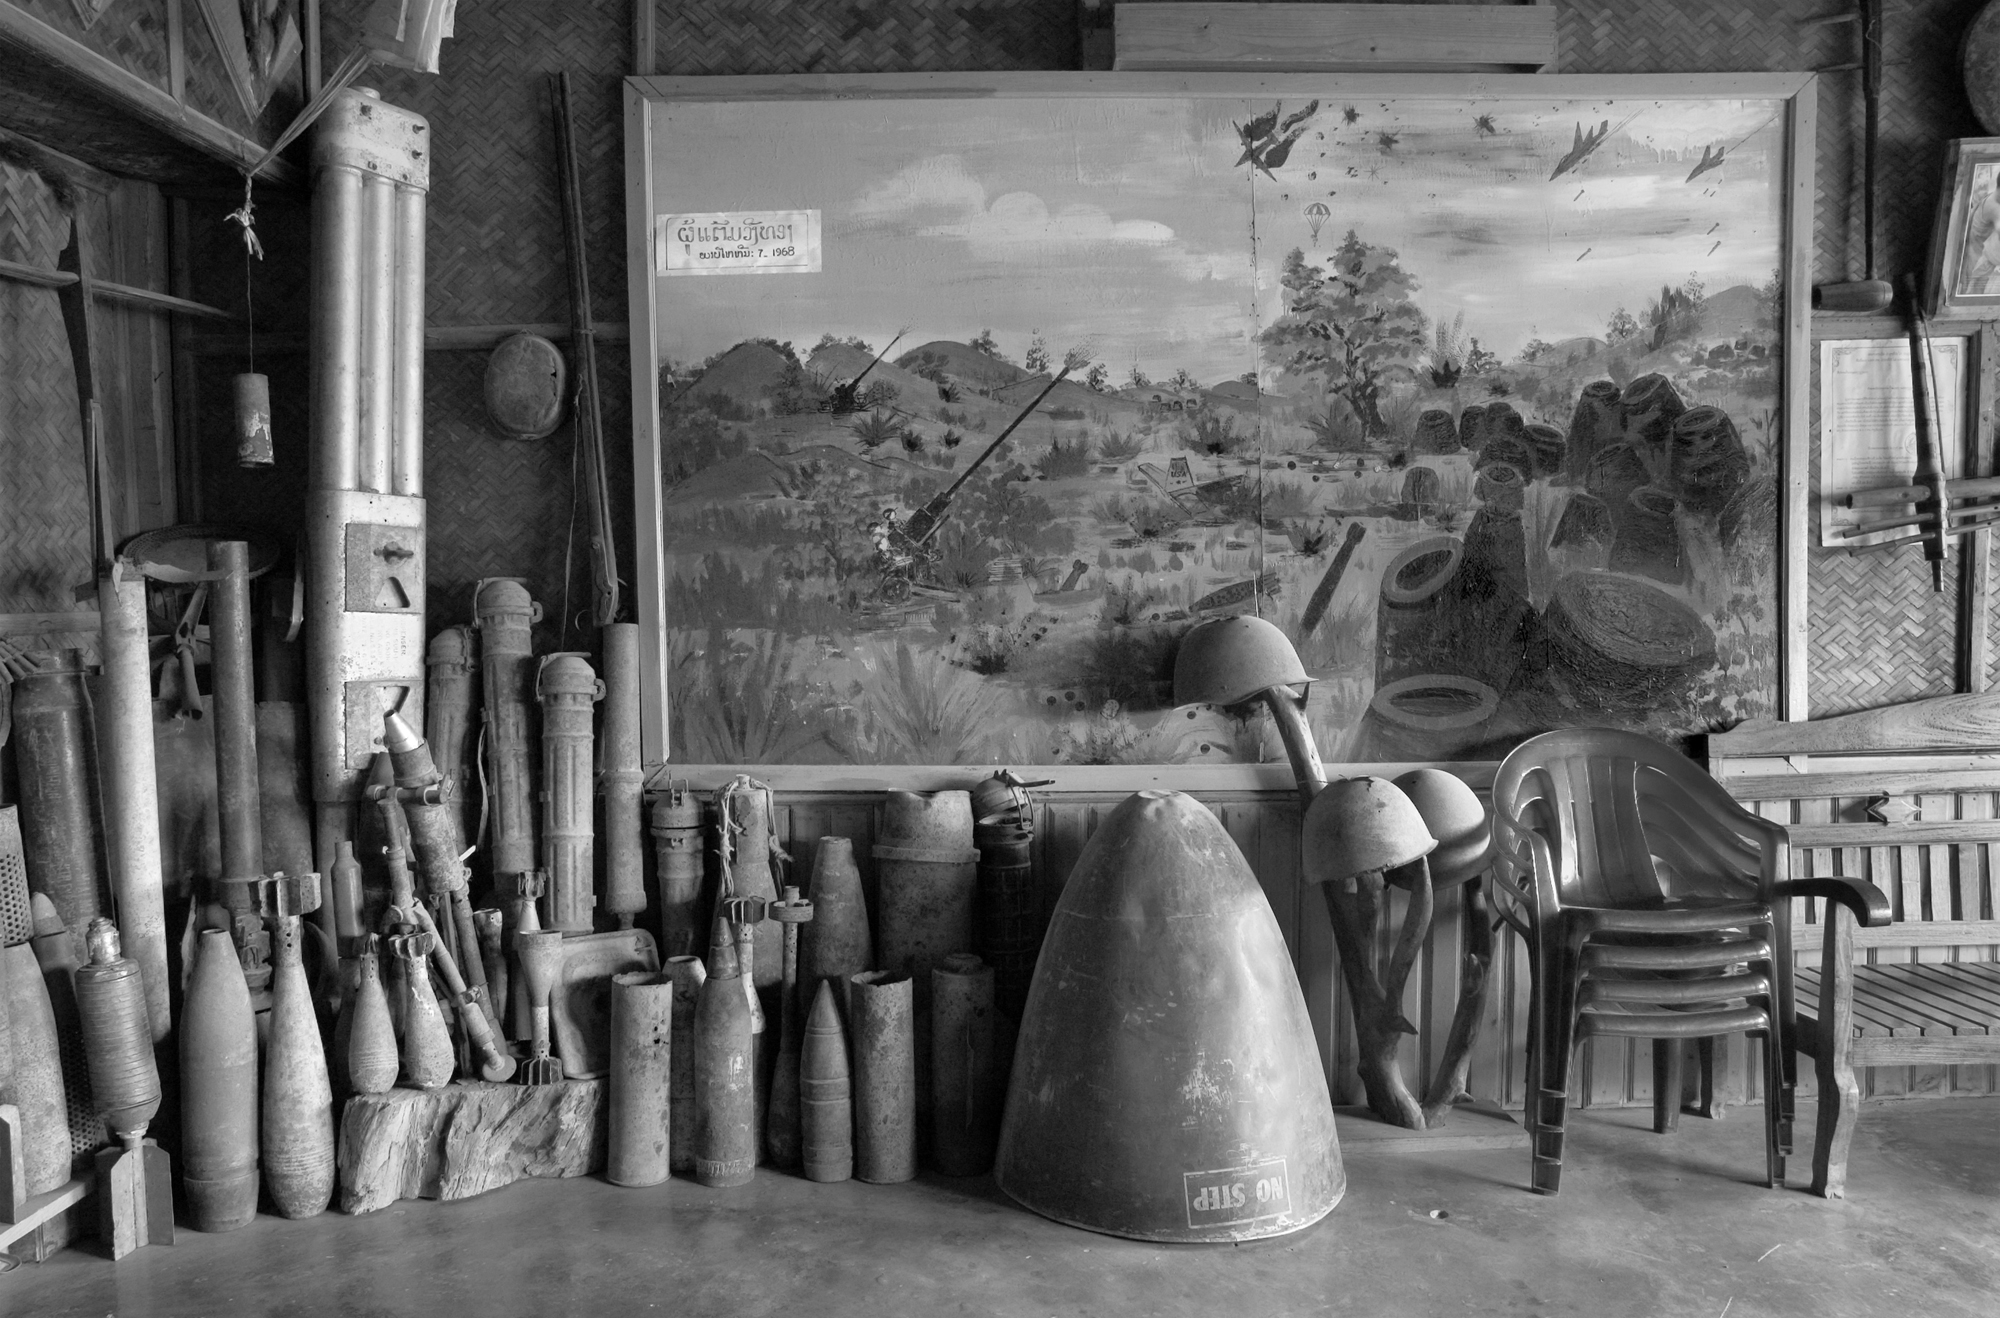 Until it closed, the lobby of the Vinh Thong Guesthouse in Phonsavan town, Laos, displayedan amazing array of defused UXO (unexploded ordnance) as well as a hand-painted mural depicting fighting around the Plain of Jars in 1968.